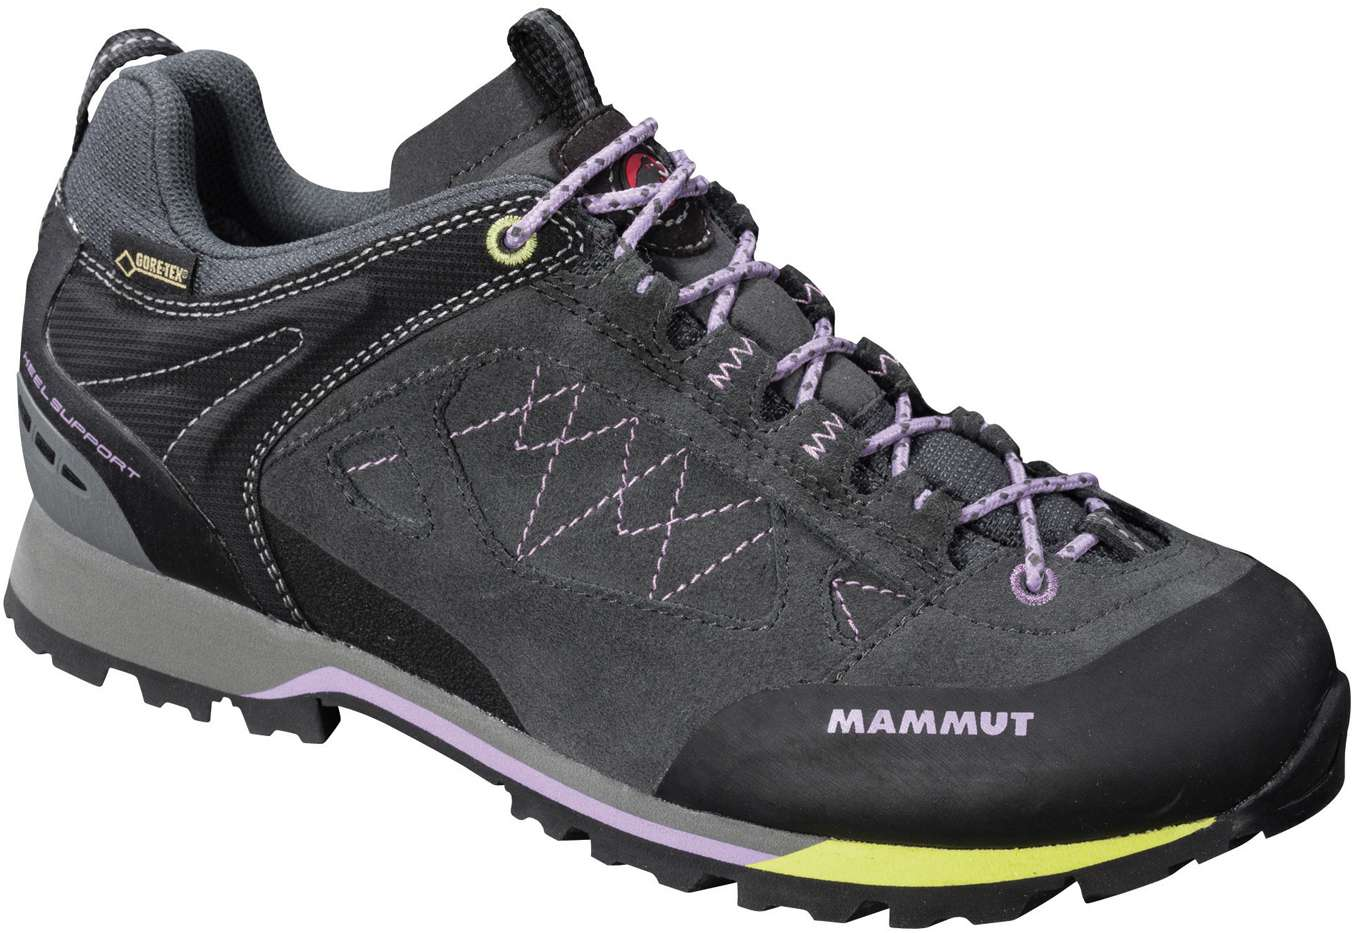 Mammut Ridge Low GTX® Women (graphite-fiji / EU 39.0 - UK 6.0) E4rz3L